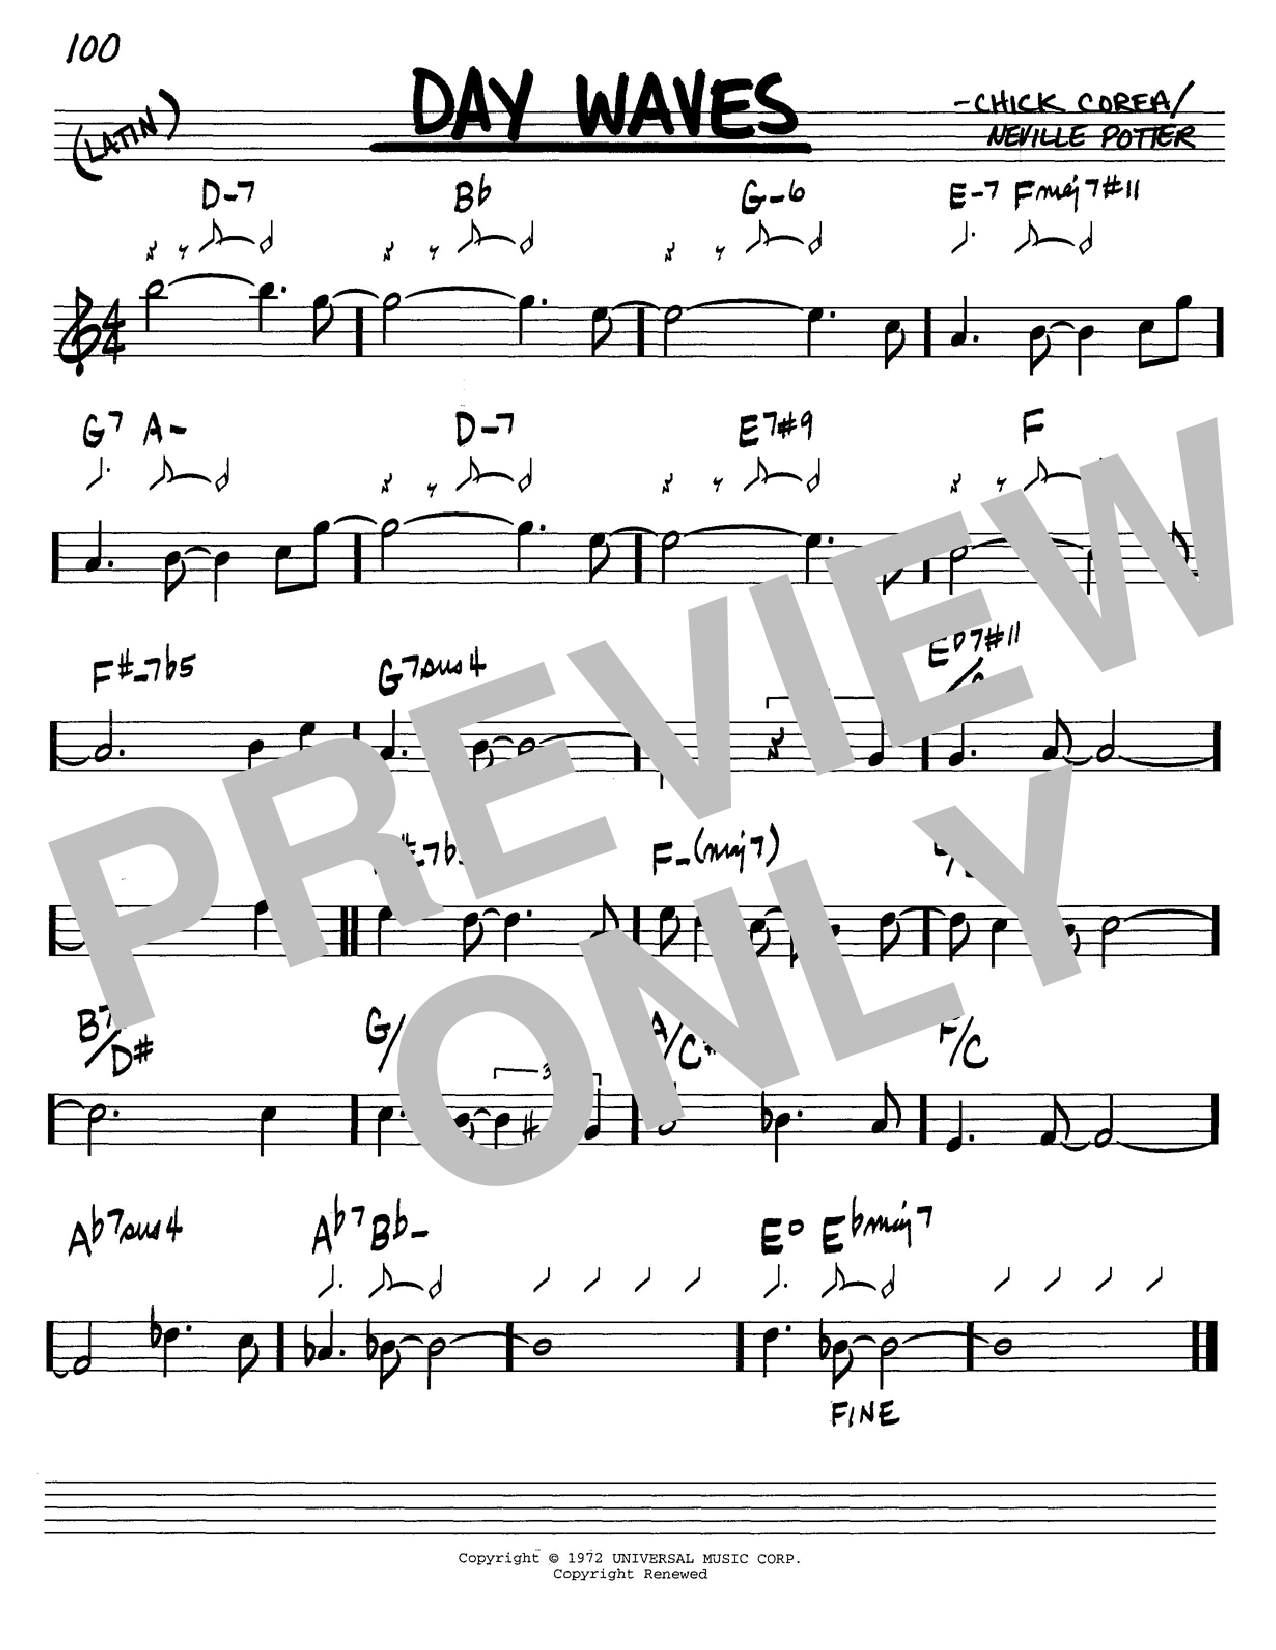 Chick Corea Day Waves sheet music notes and chords. Download Printable PDF.